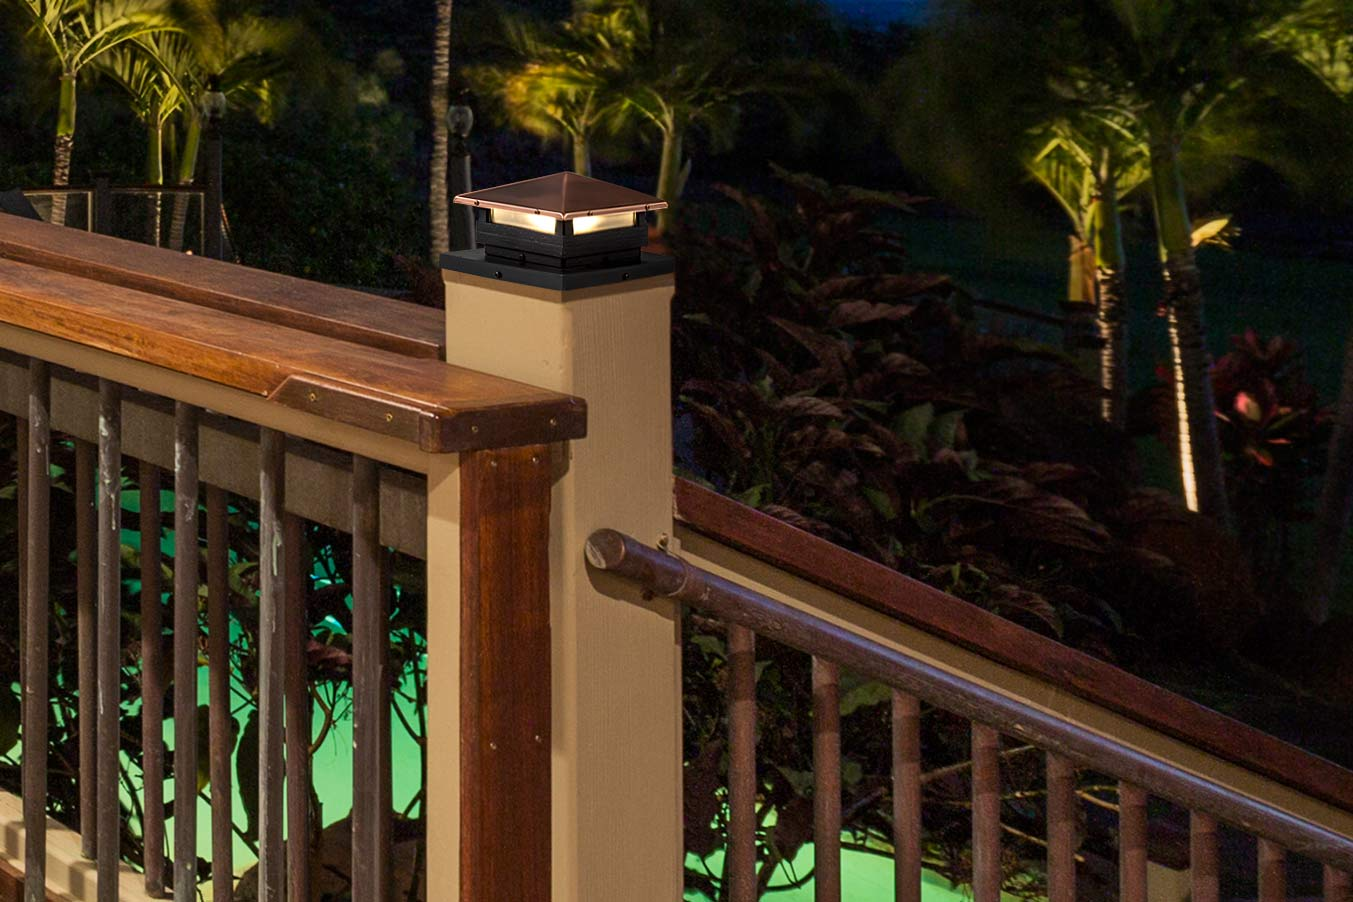 4x4 led deck and fence post cap light with 6x6 post adapter 10 4x4 led deck and fence post cap light with 6x6 post adapter 10 watt equivalent 75 lumens deck post illuminated aloadofball Gallery